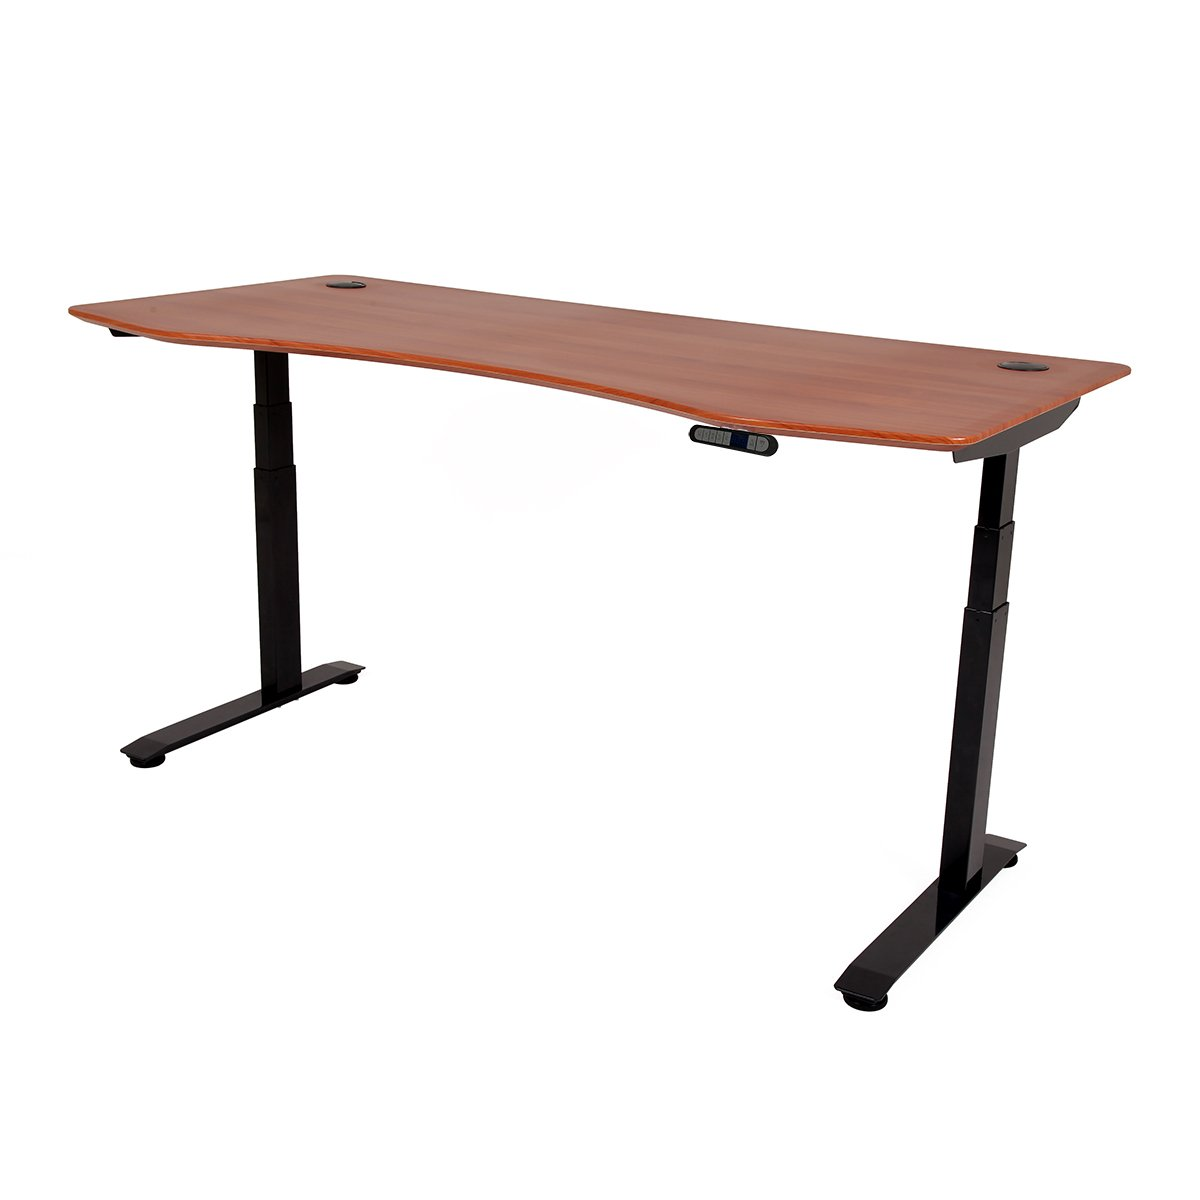 ApexDesk Elite Series 71'' W Electric Height Adjustable Standing Desk (Memory Controller, 71'' Red Cherry Top, Black Frame) by ApexDesk